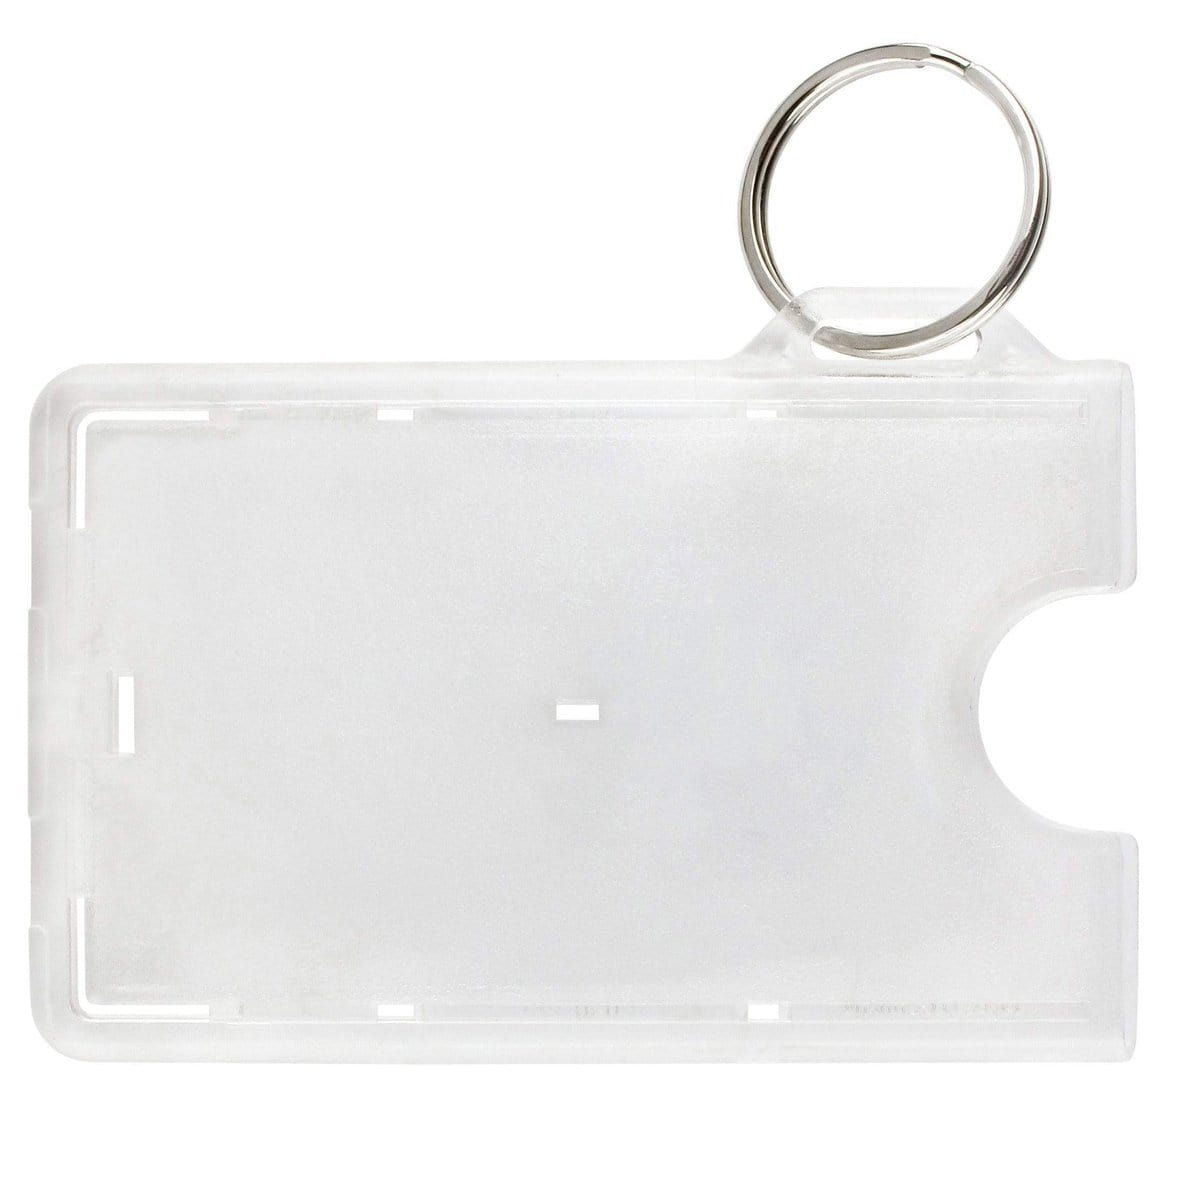 SPID Secure Fuel Card Holder with Key Ring (SPID-FUELCARD-RNG-C)